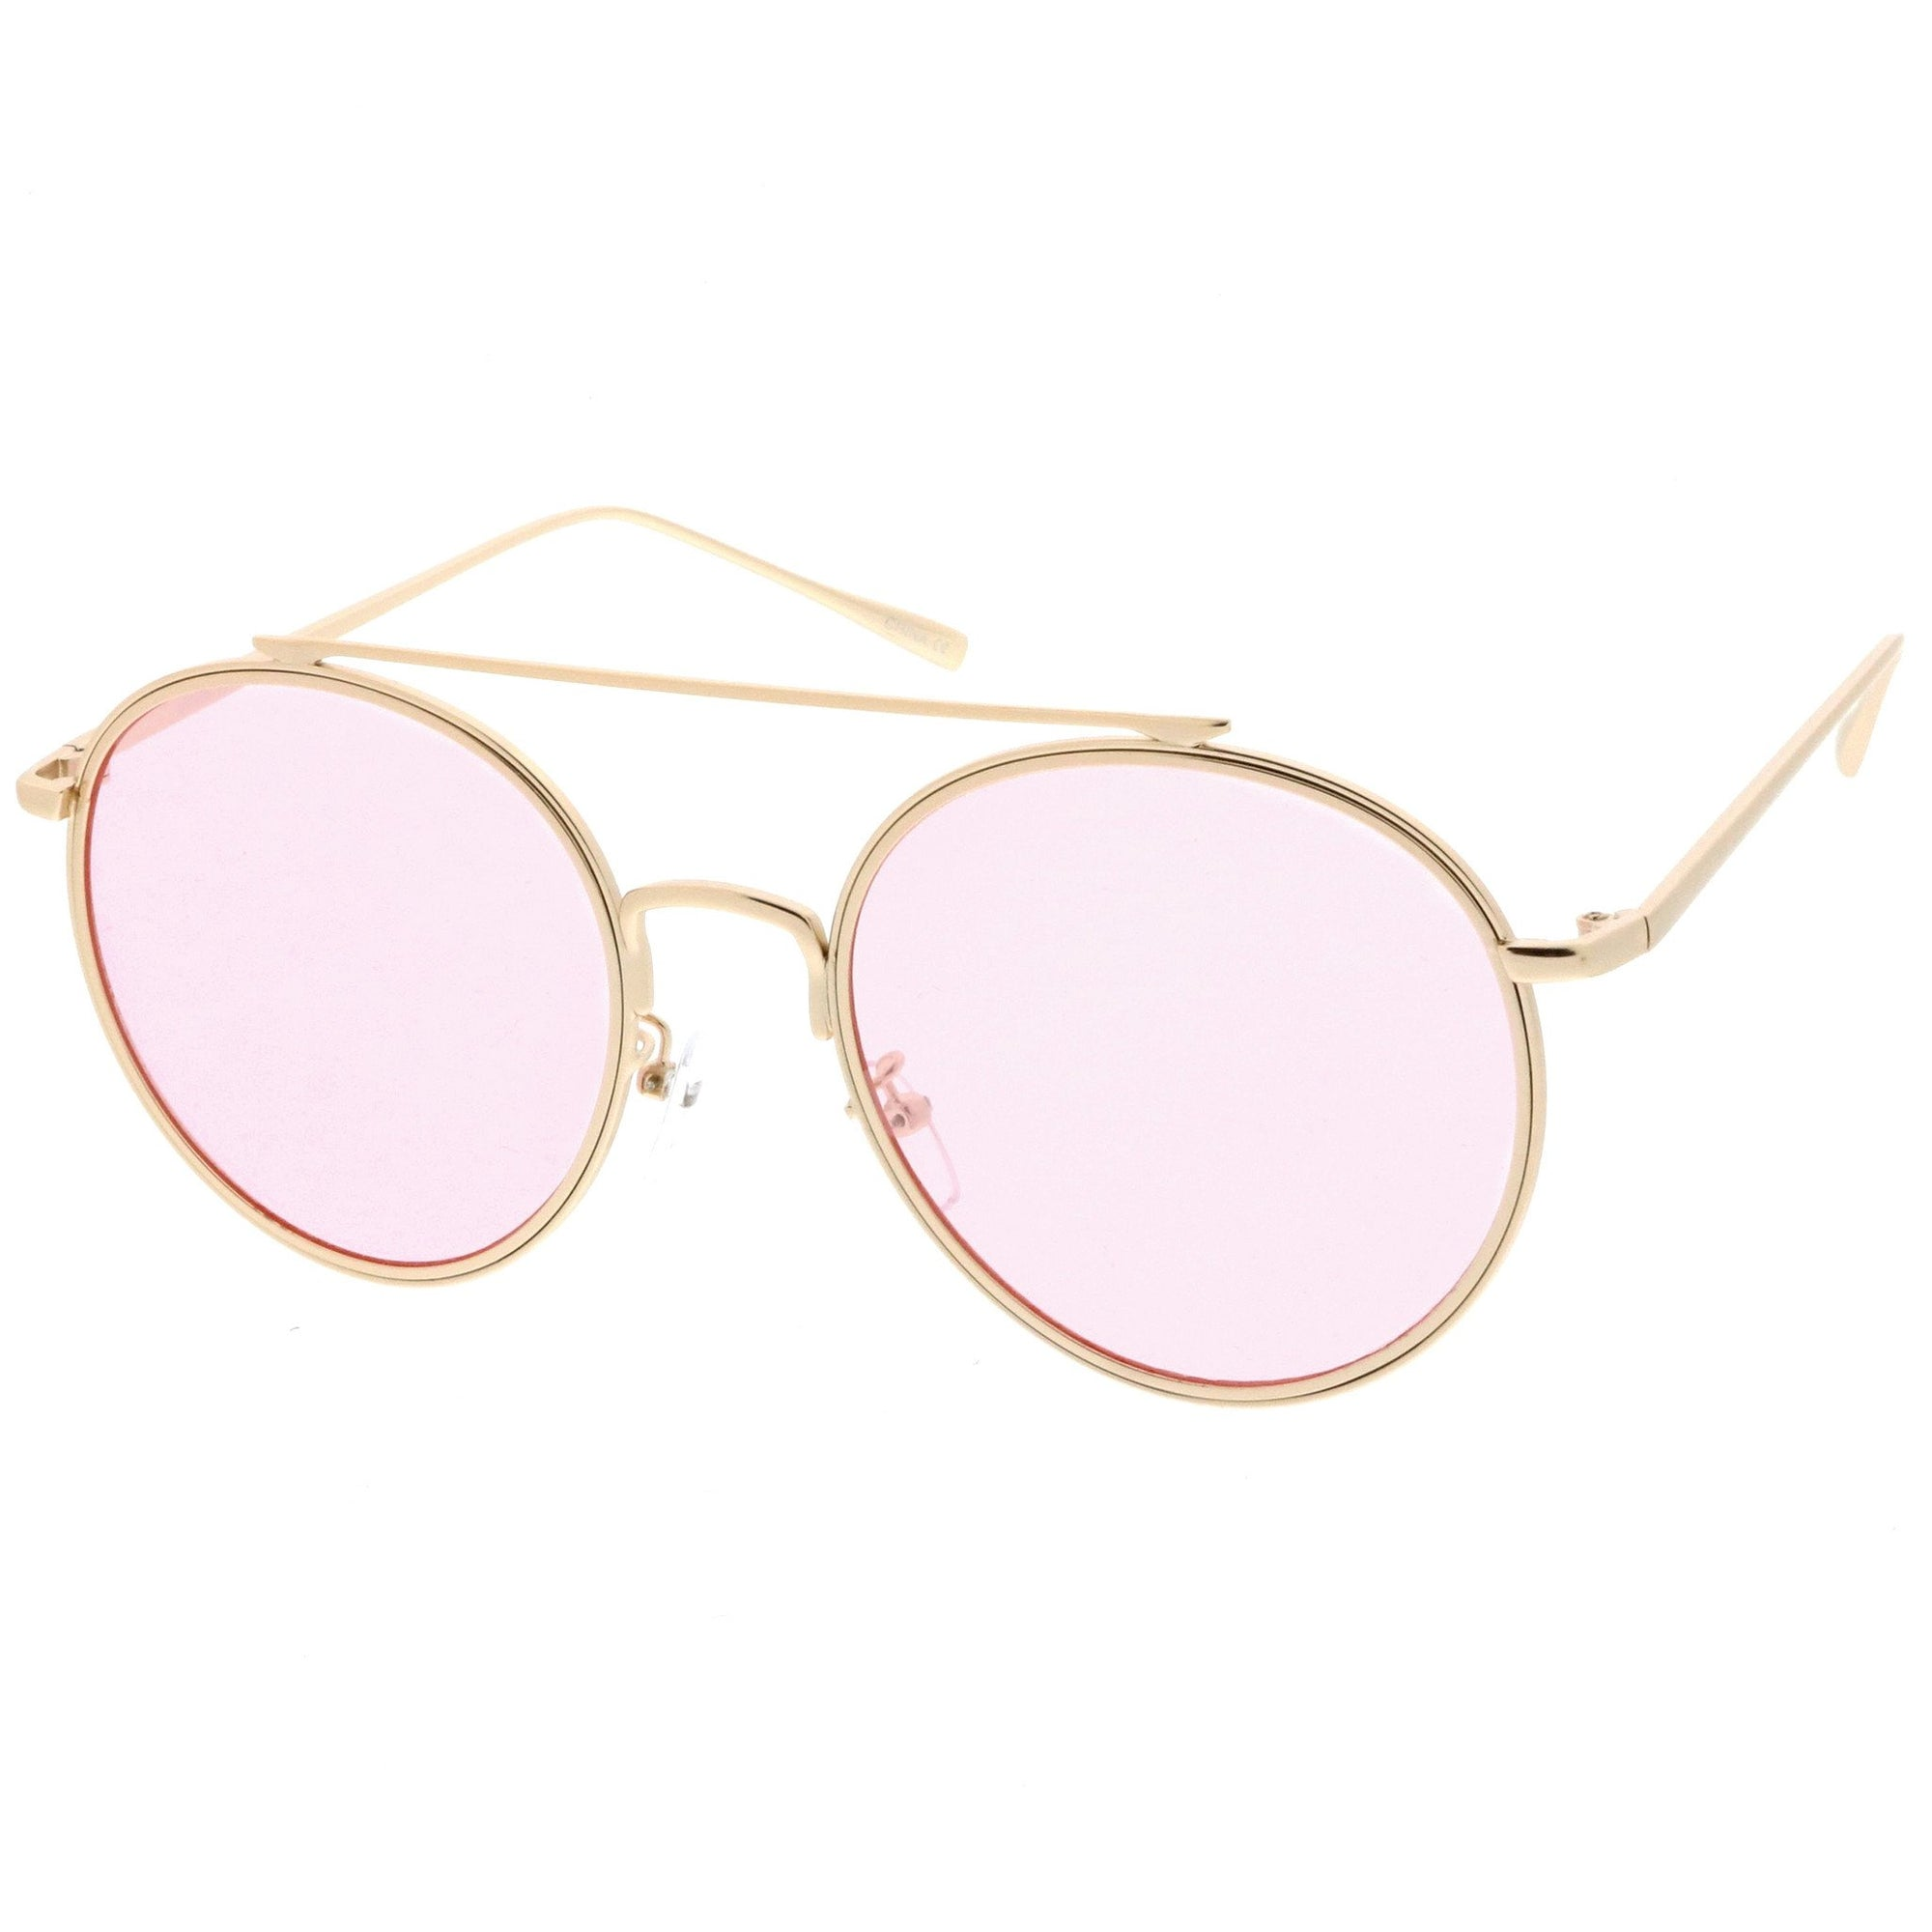 ea9f905d54f ... Modern Slim Round Color Tone Aviator Sunglasses A871 · Gold Pink · Gold  Pink